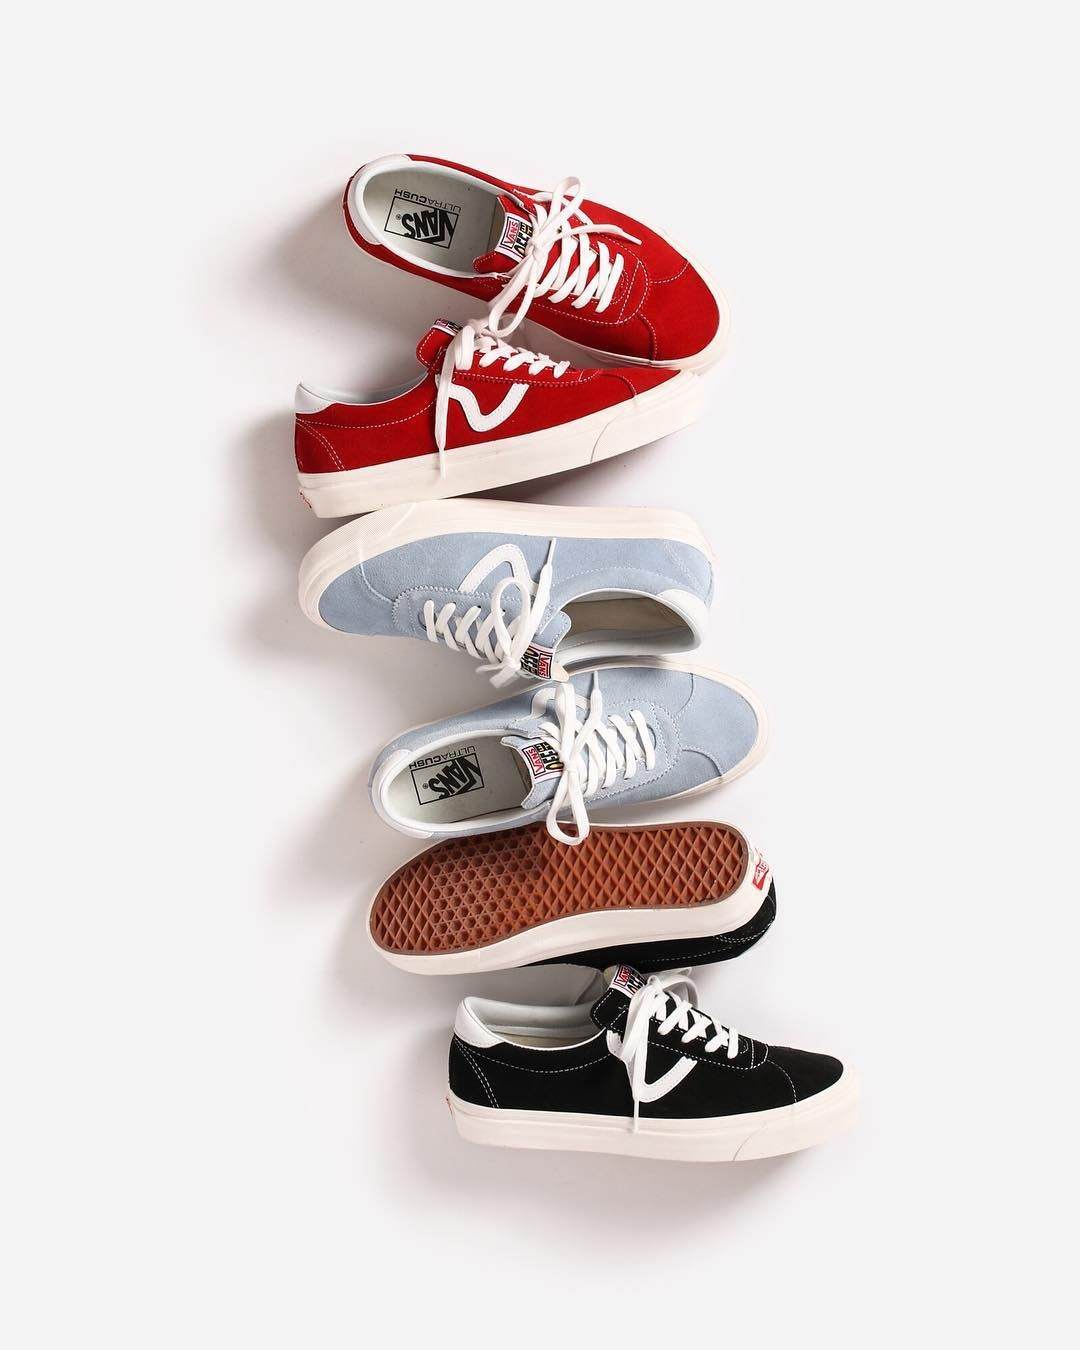 The Vans UA Style 73 DX is making a